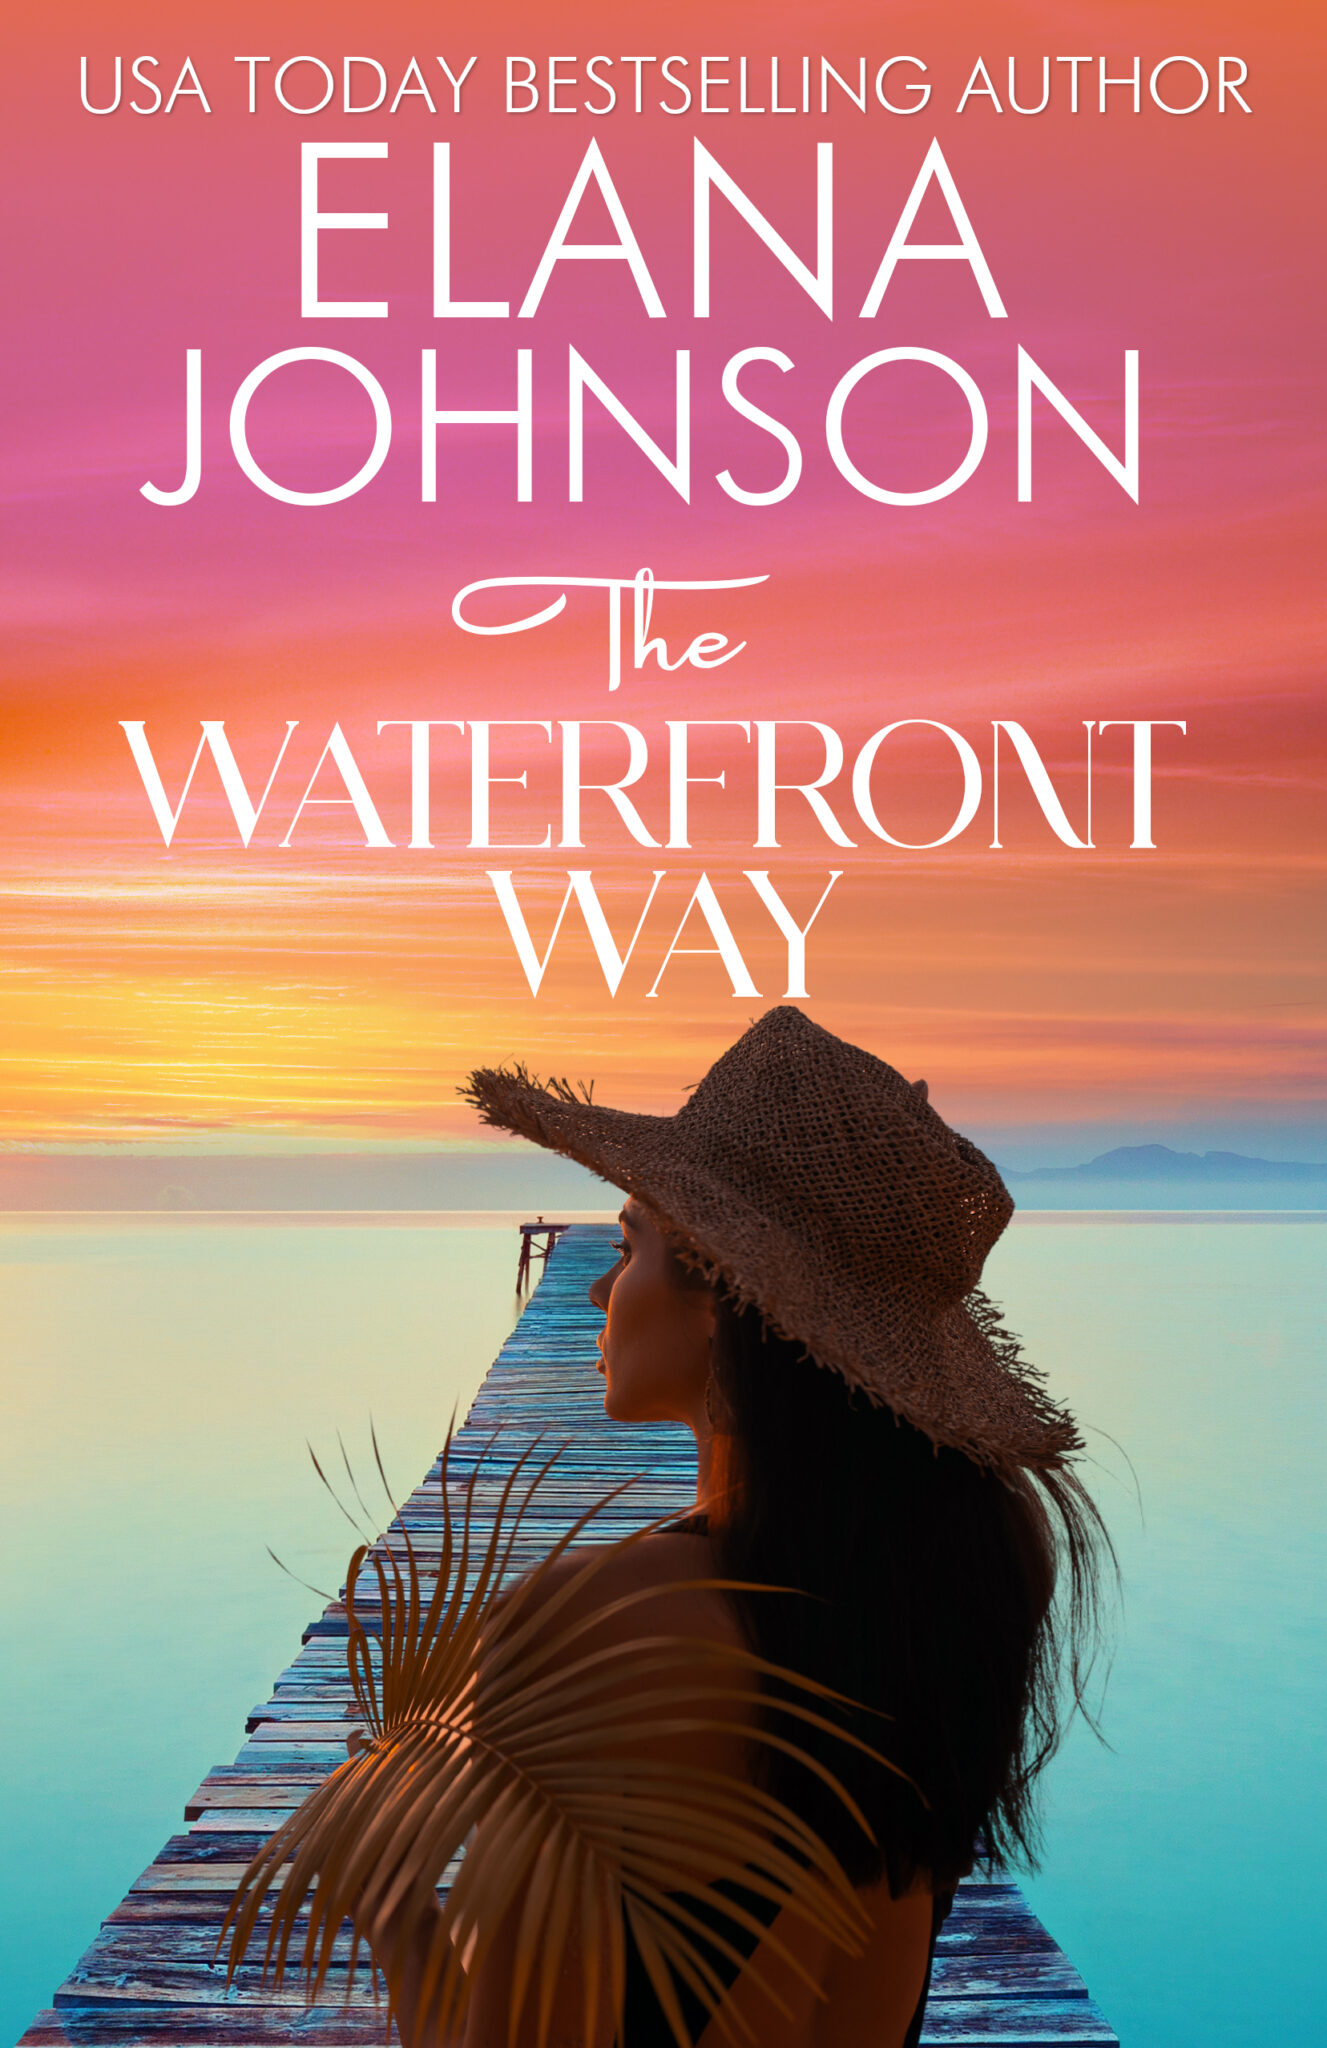 The Waterfront Way EBOOK flat